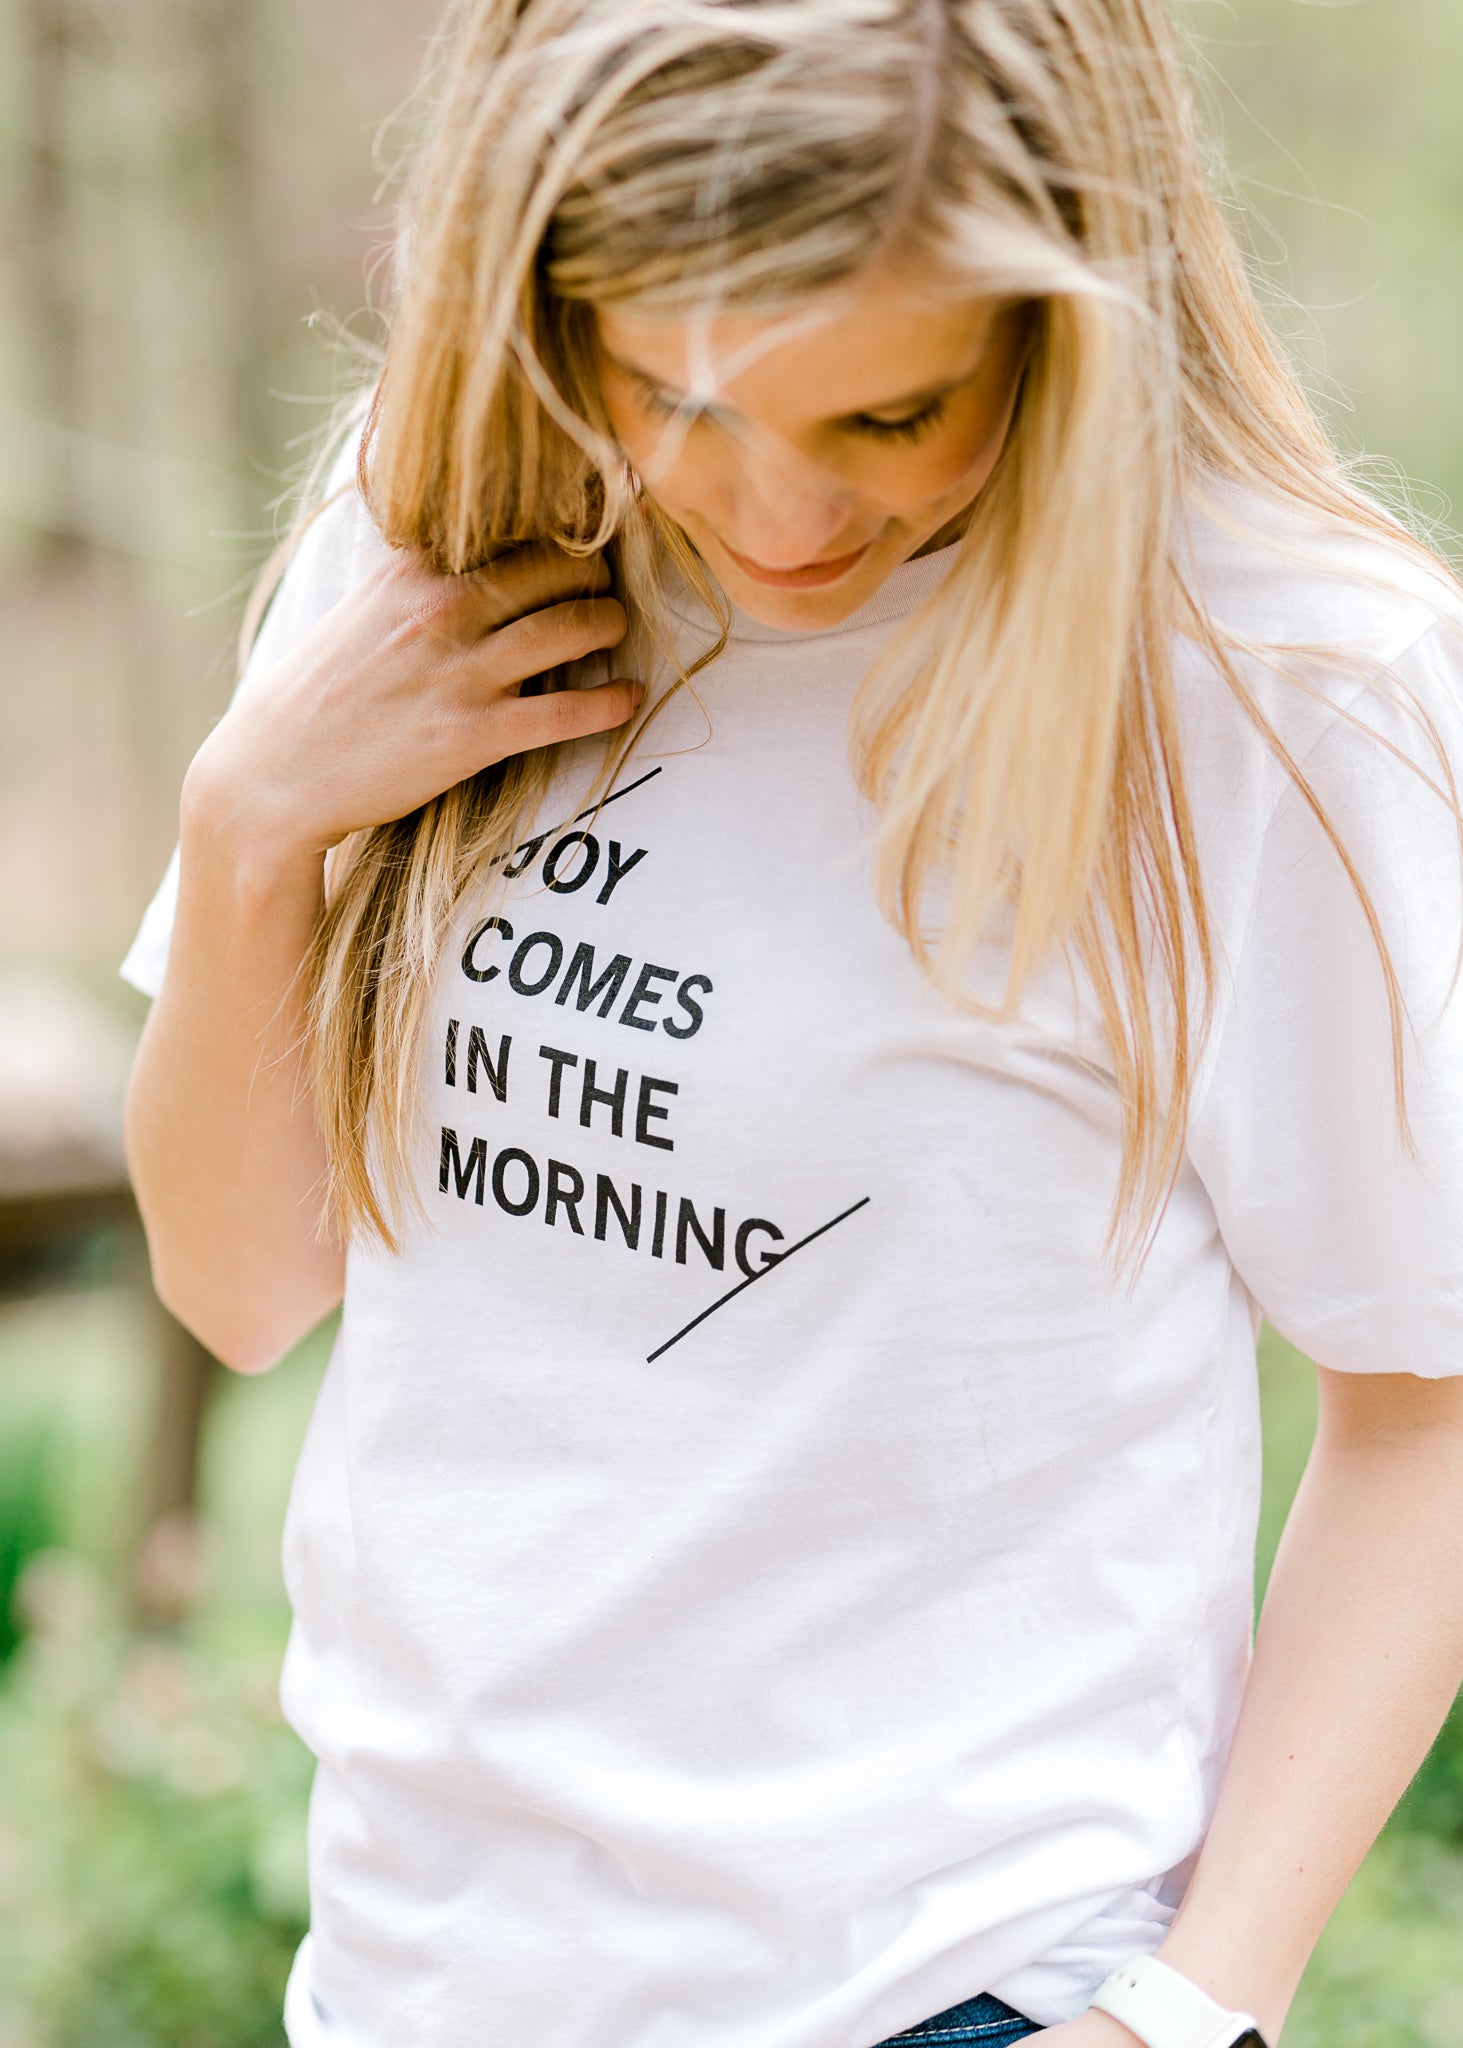 B Joy Comes in the Morning Tee